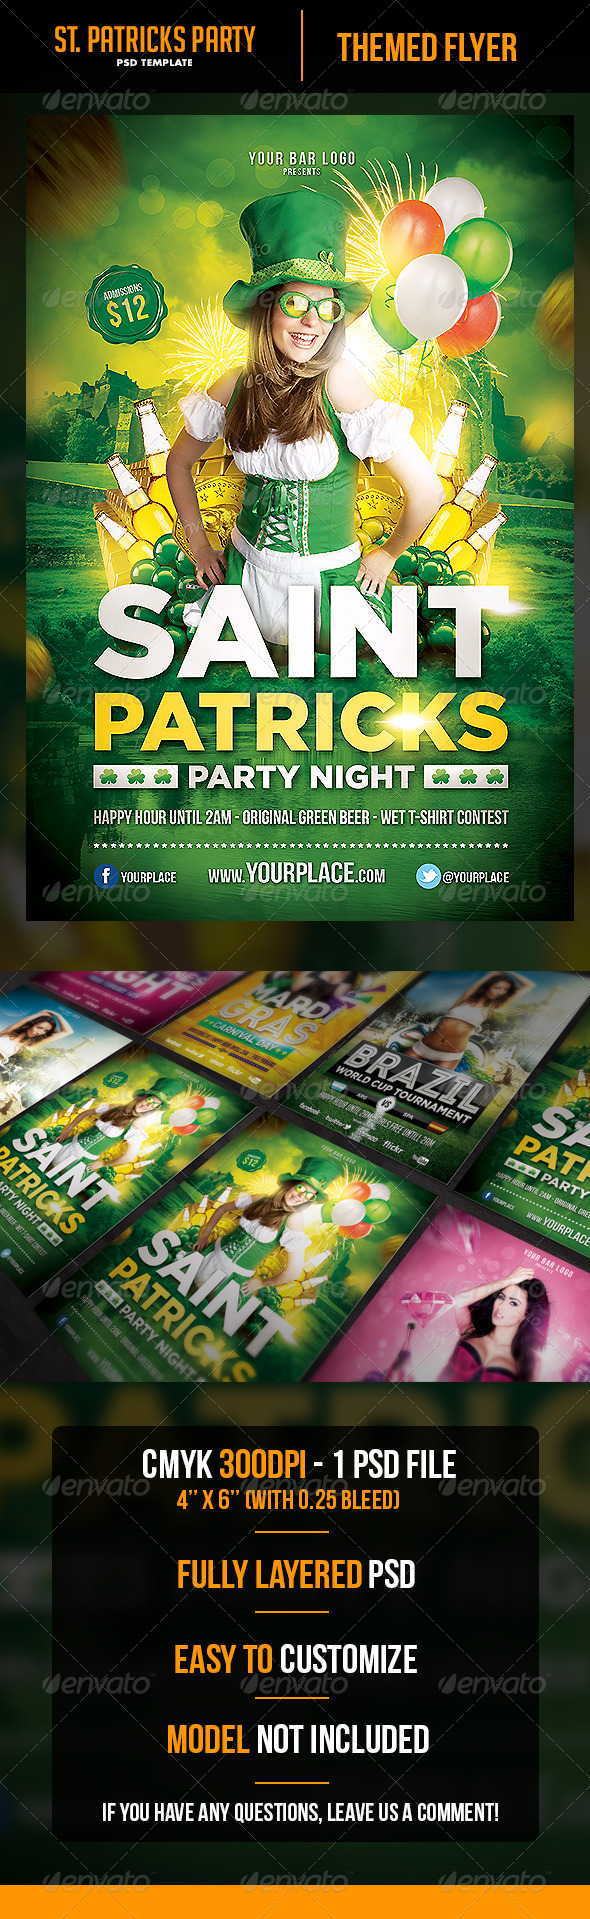 Saint Patricks Party Night Flyer Template - Holidays Events